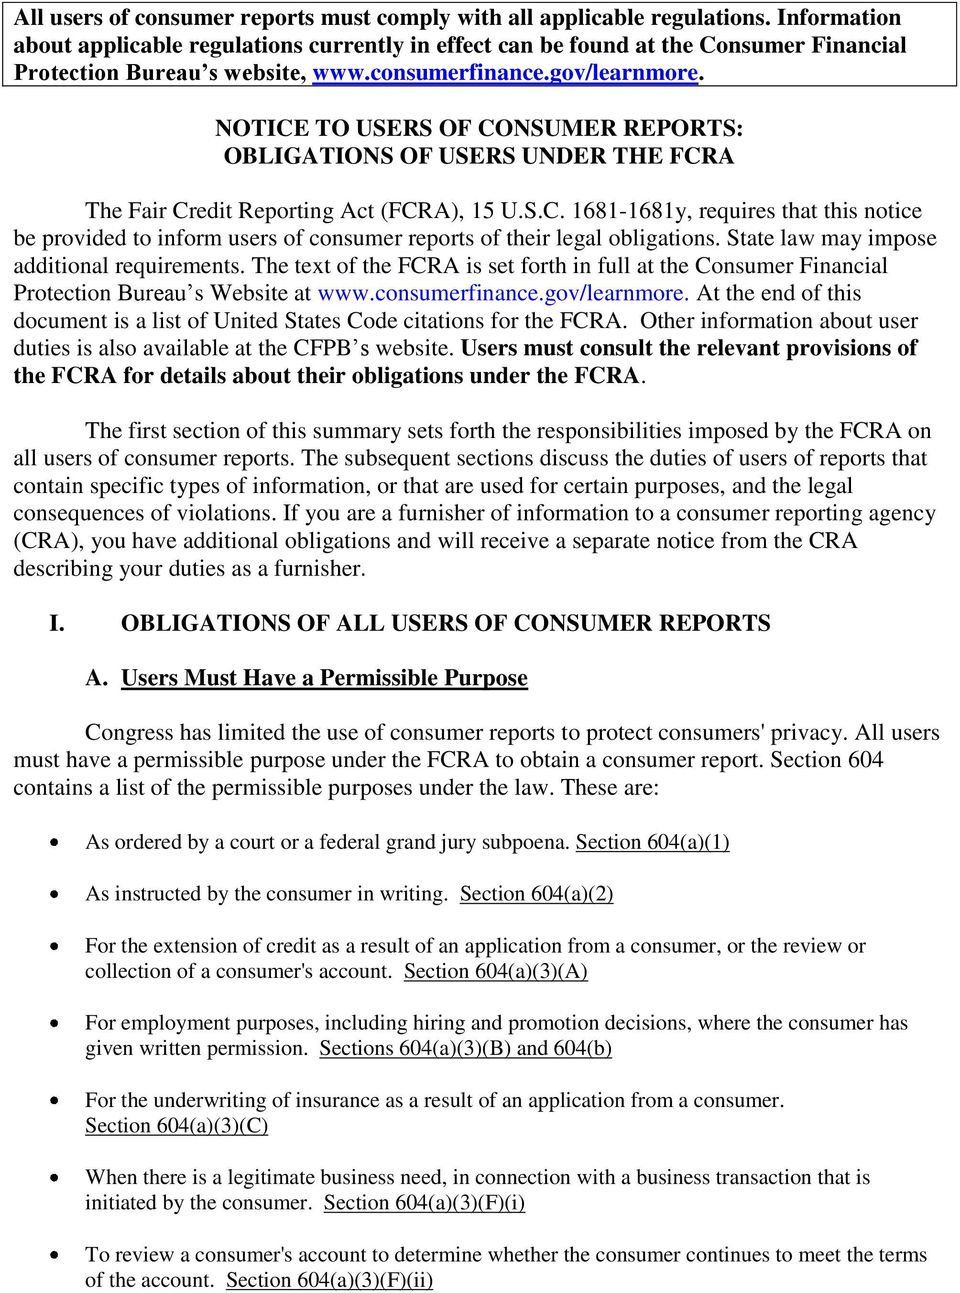 NOTICE TO USERS OF CONSUMER REPORTS: OBLIGATIONS OF USERS UNDER THE FCRA The Fair Credit Reporting Act (FCRA), 15 U.S.C. 1681-1681y, requires that this notice be provided to inform users of consumer reports of their legal obligations.